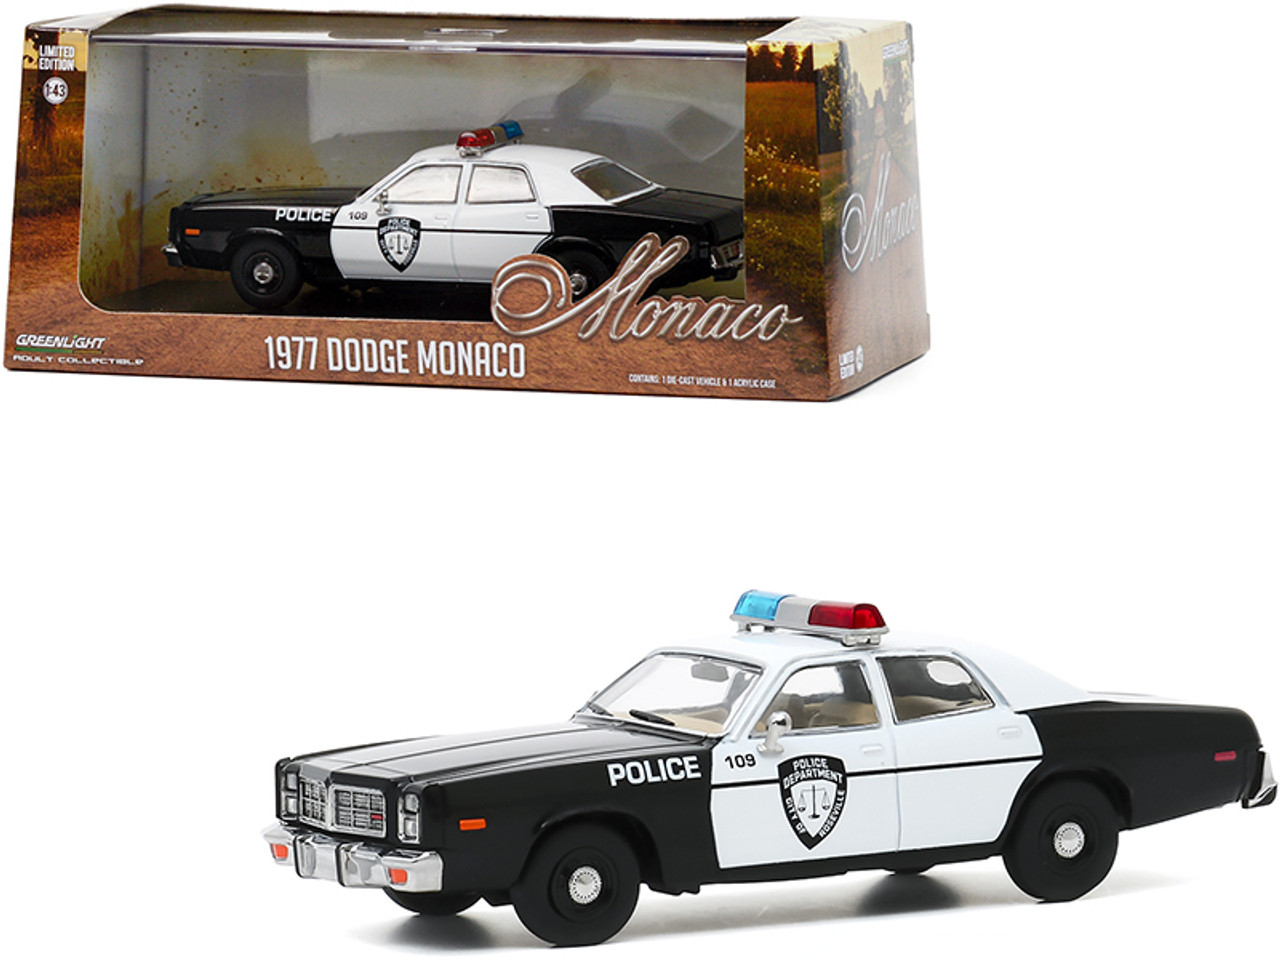 "1977 Dodge Monaco White and Black ""Police Department City of Roseville"" 1/43 Diecast Model Car by Greenlight"